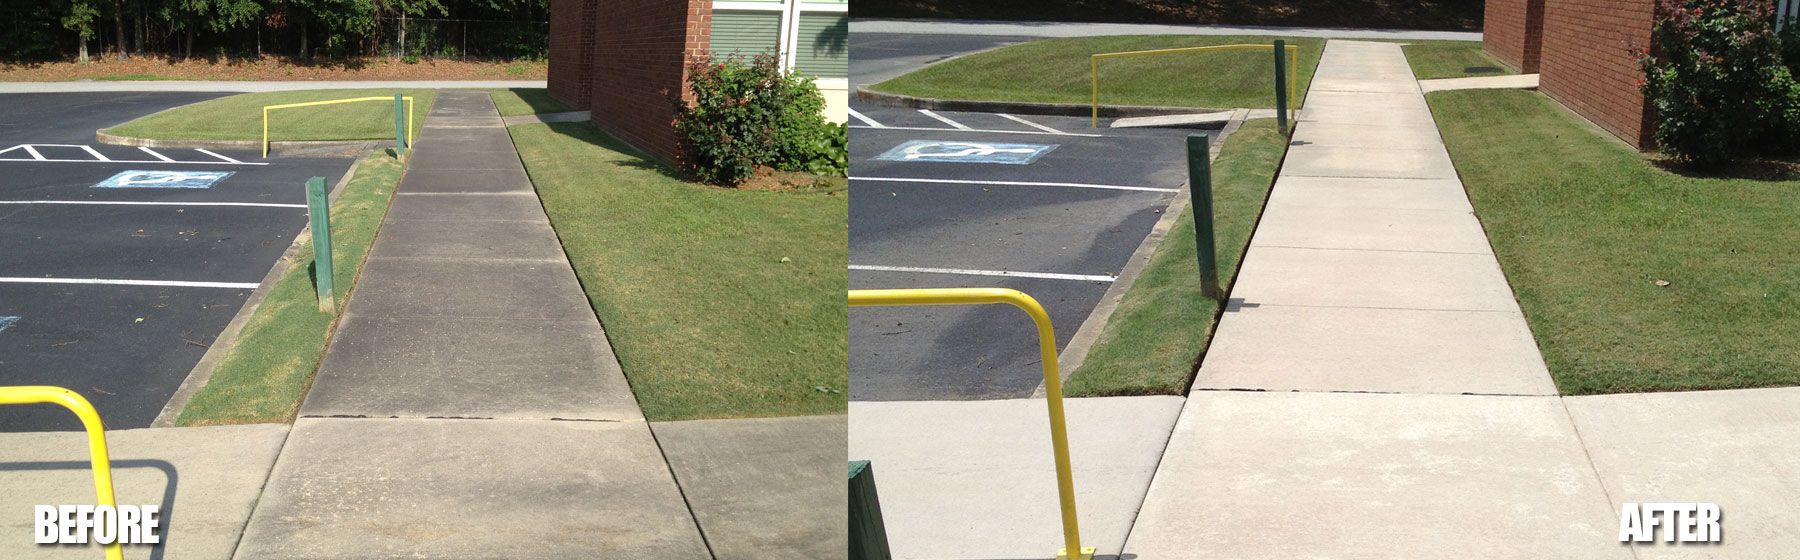 concrete-cleaning-augusta-ga